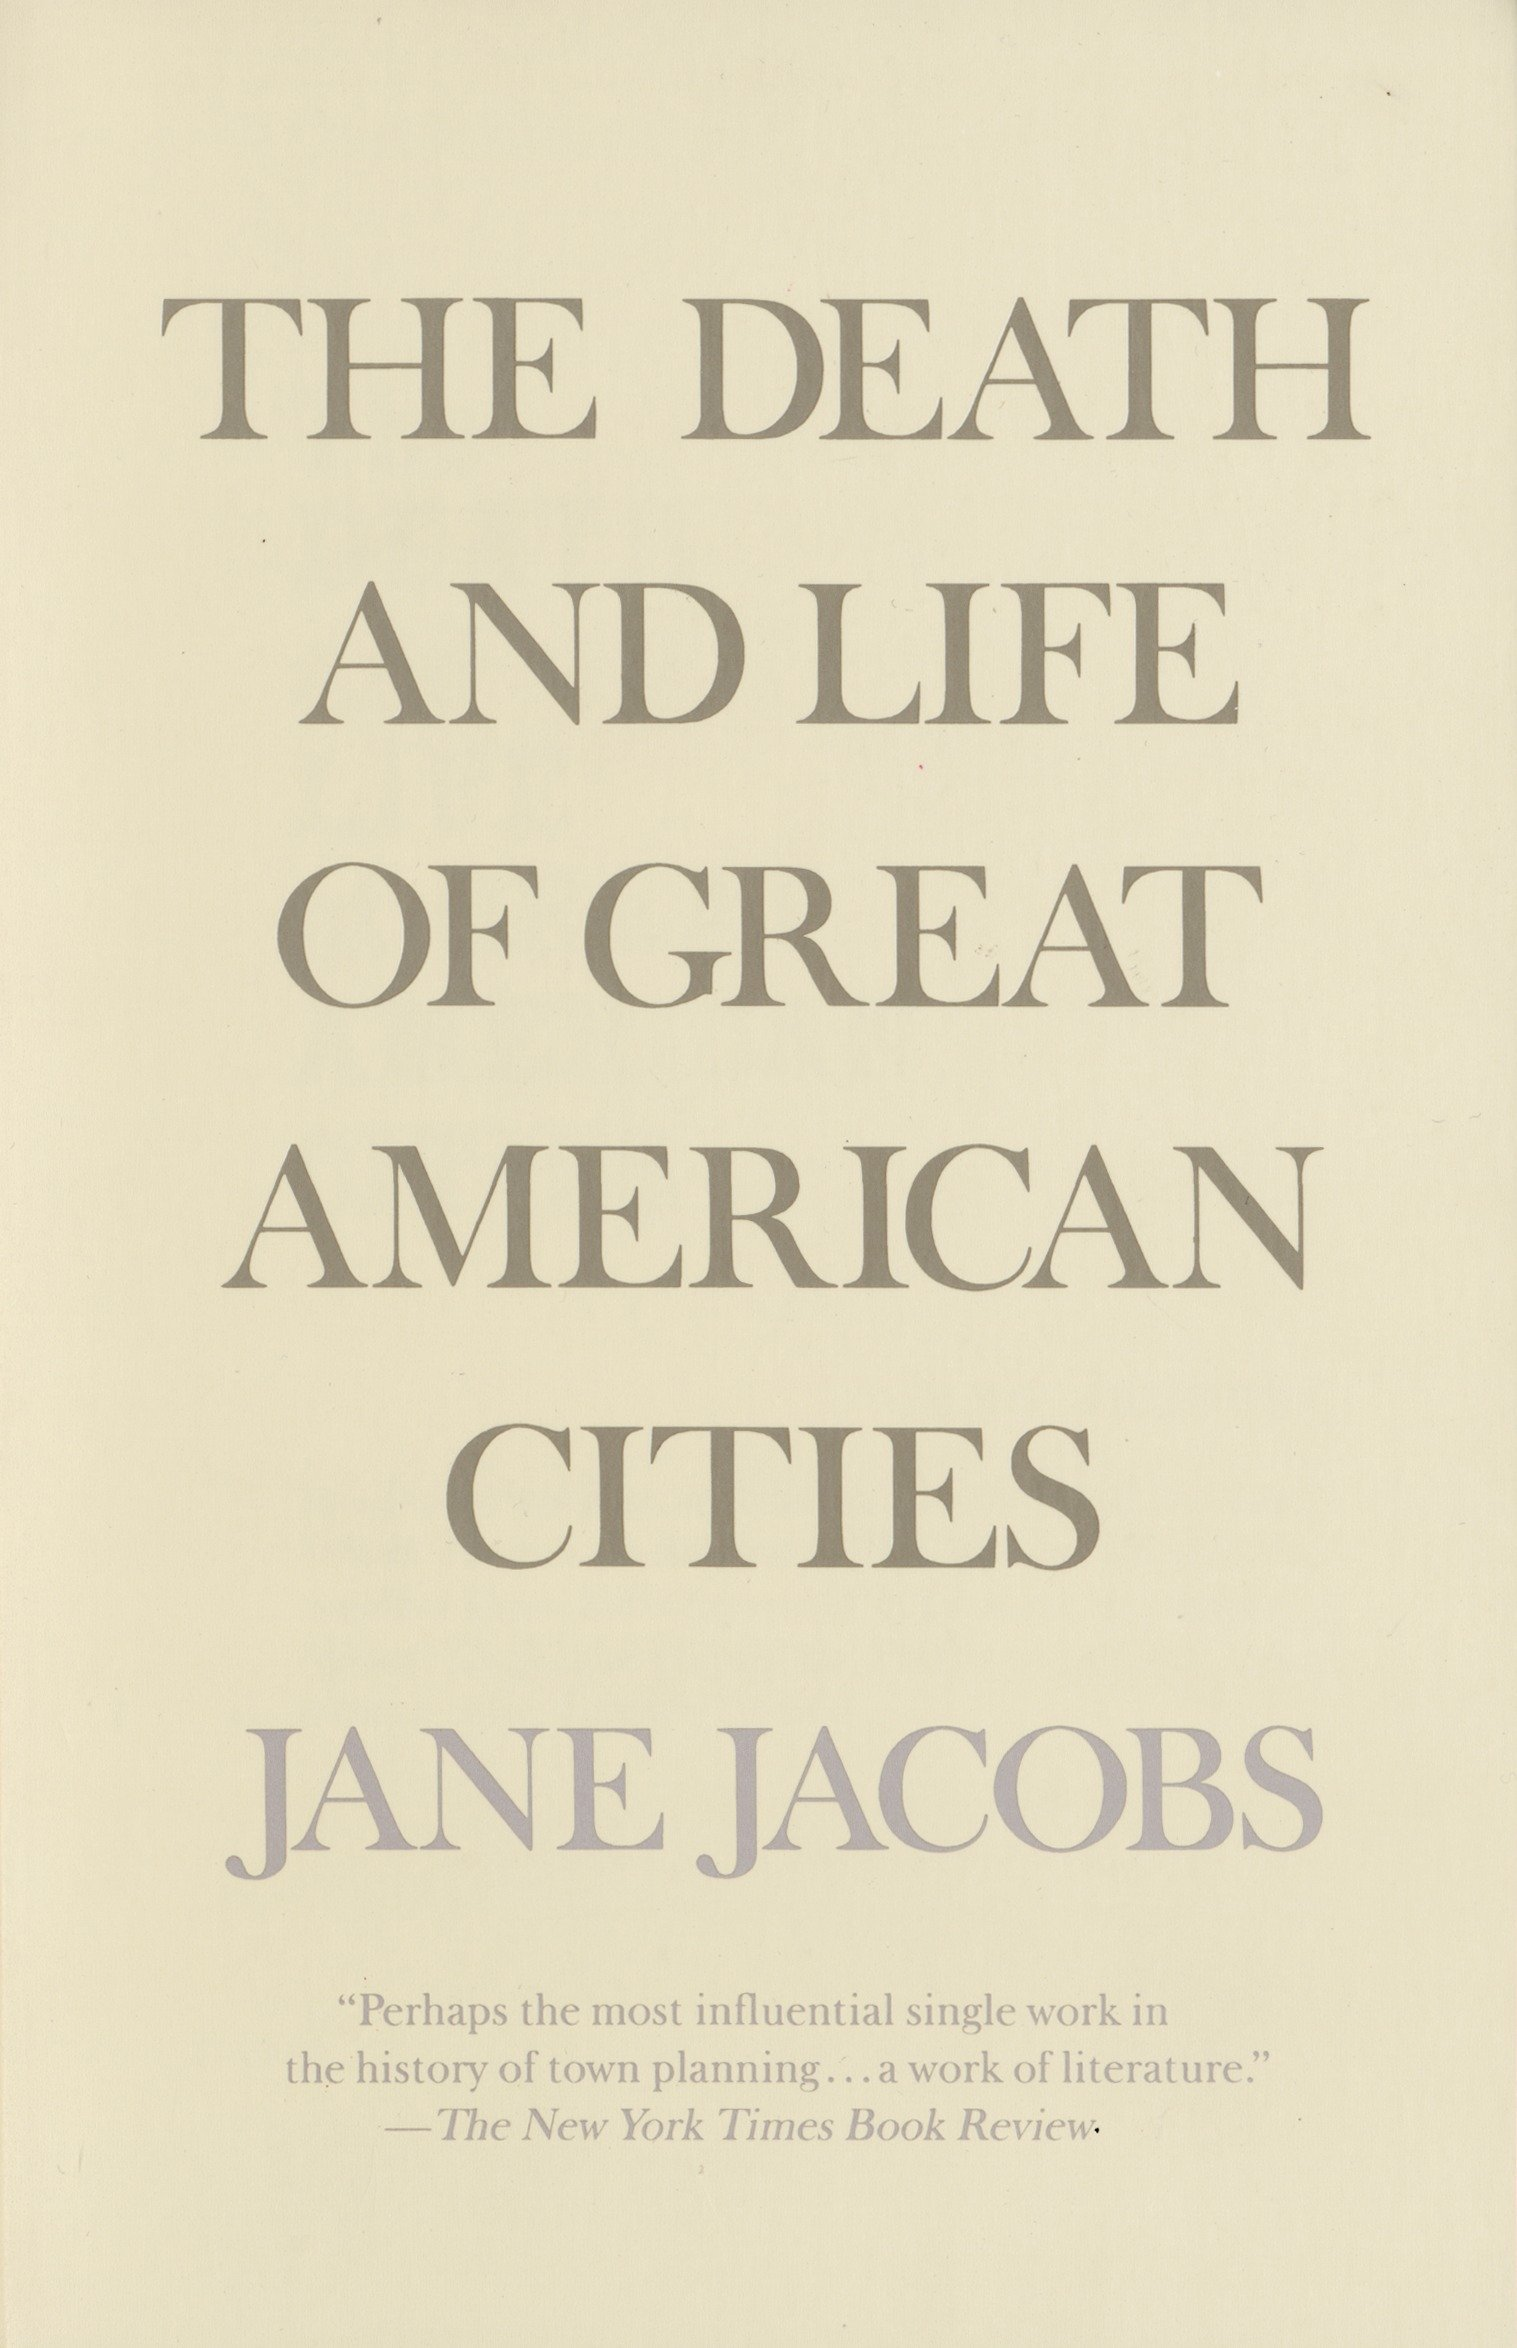 Death and Life of Great American Cities.jpg